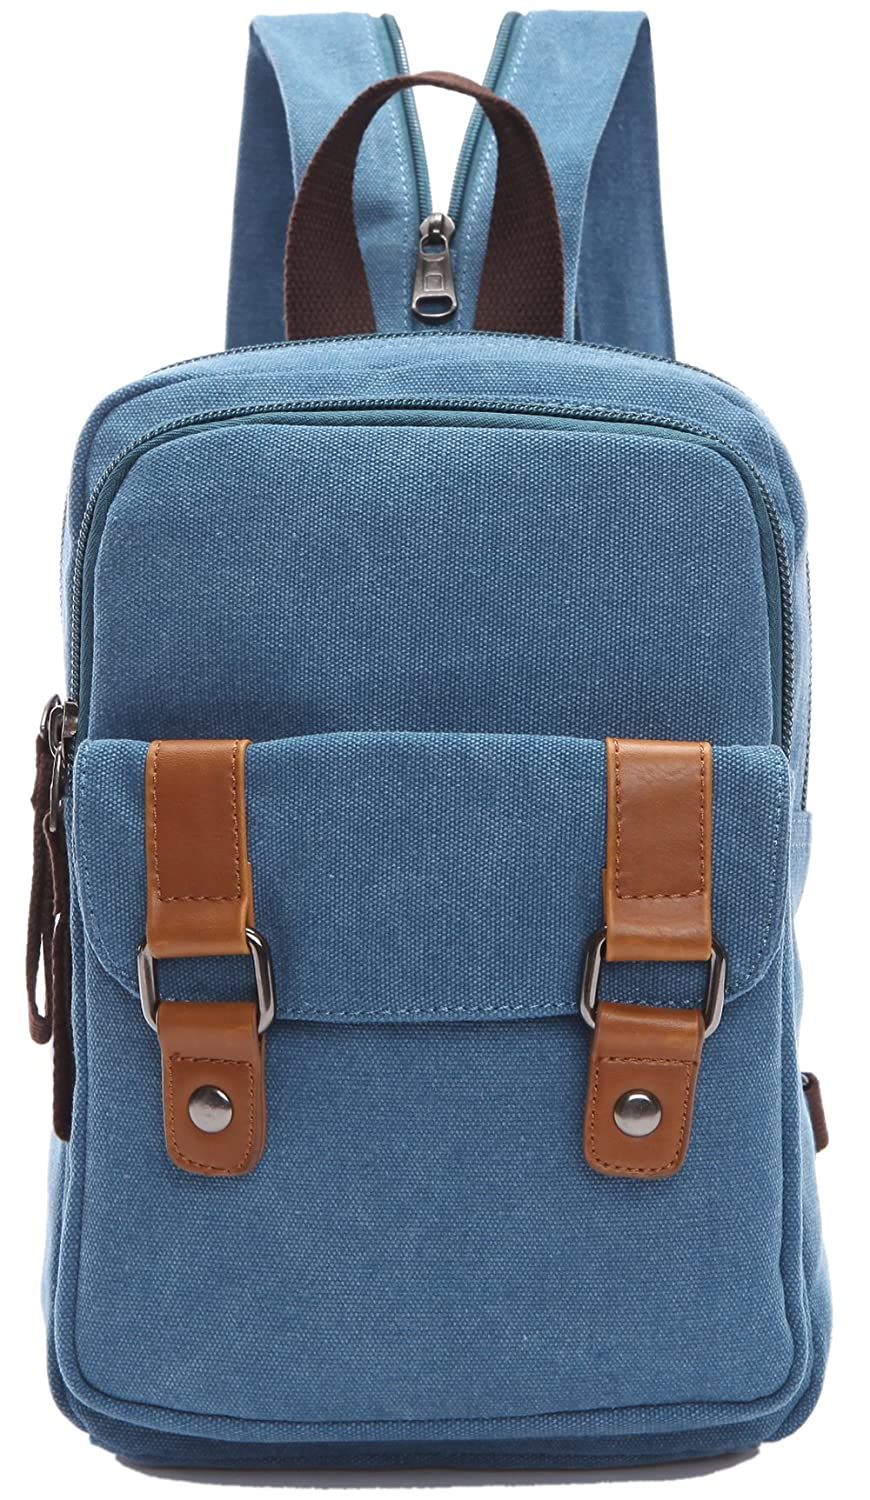 Arbag Small Cute Backpack Vintage Casual Canvas Shoulder Bag Daypack